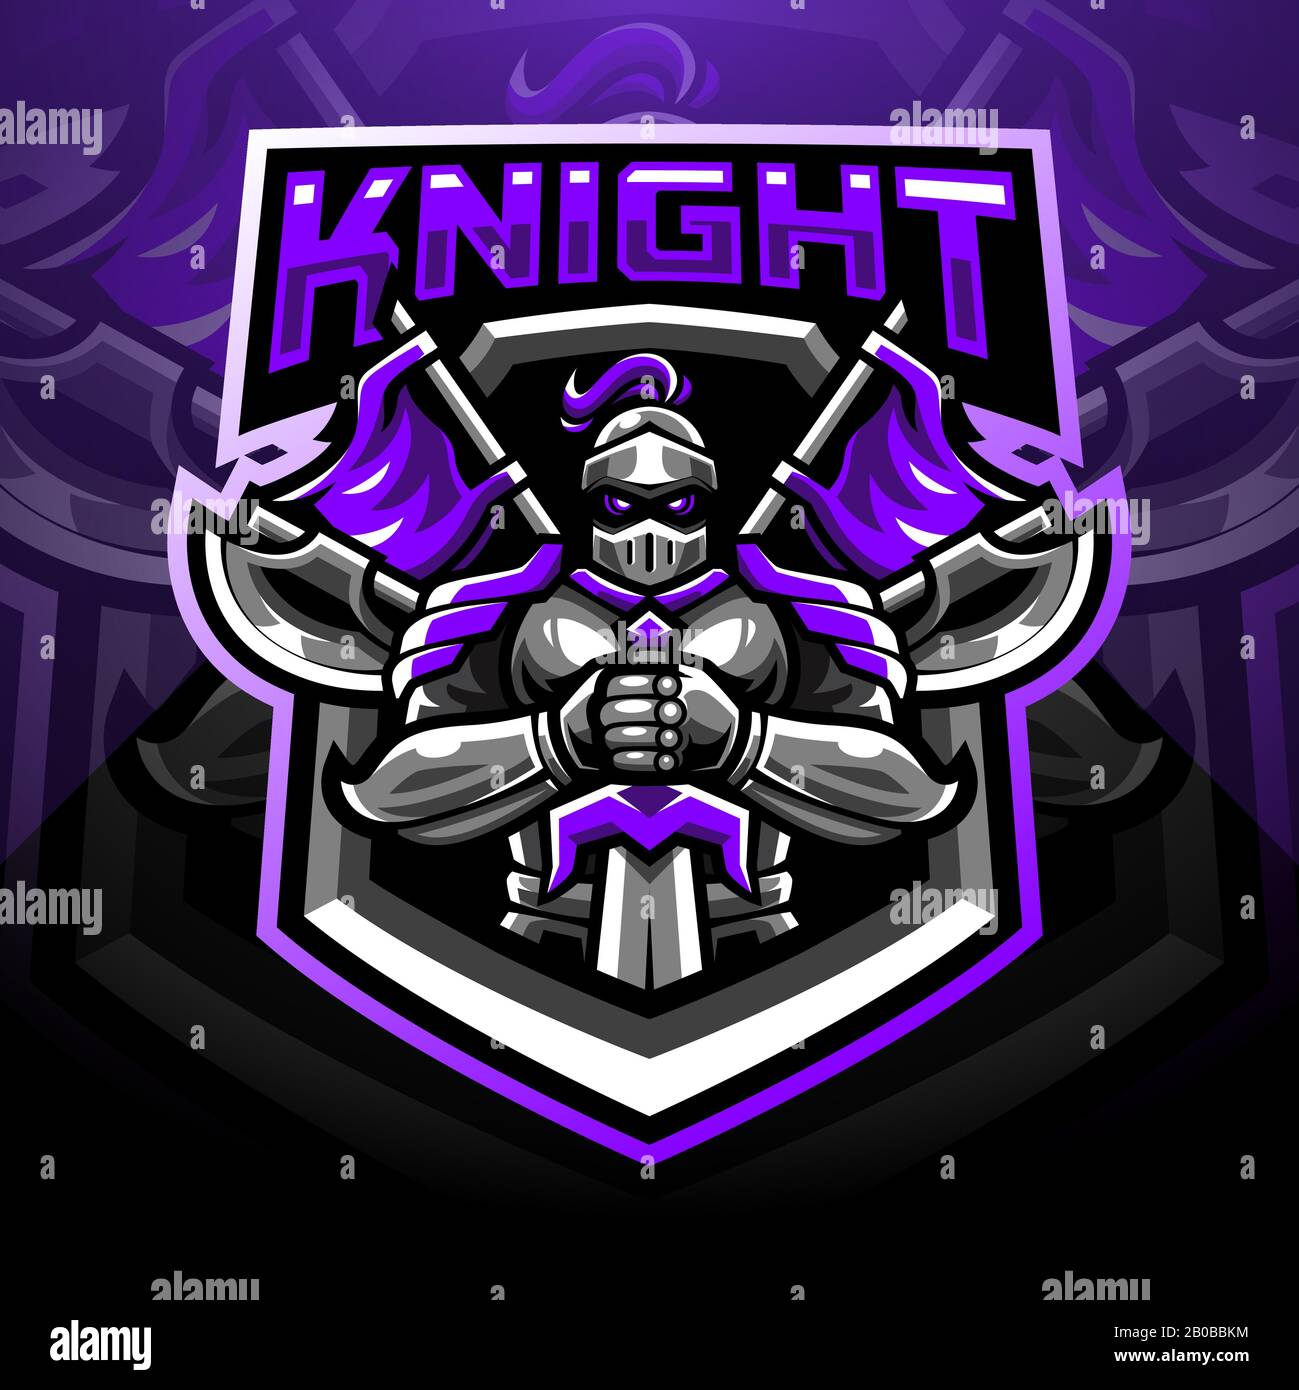 Knight Logo / Designing a professional knight logo is really easy with graphicsprings.